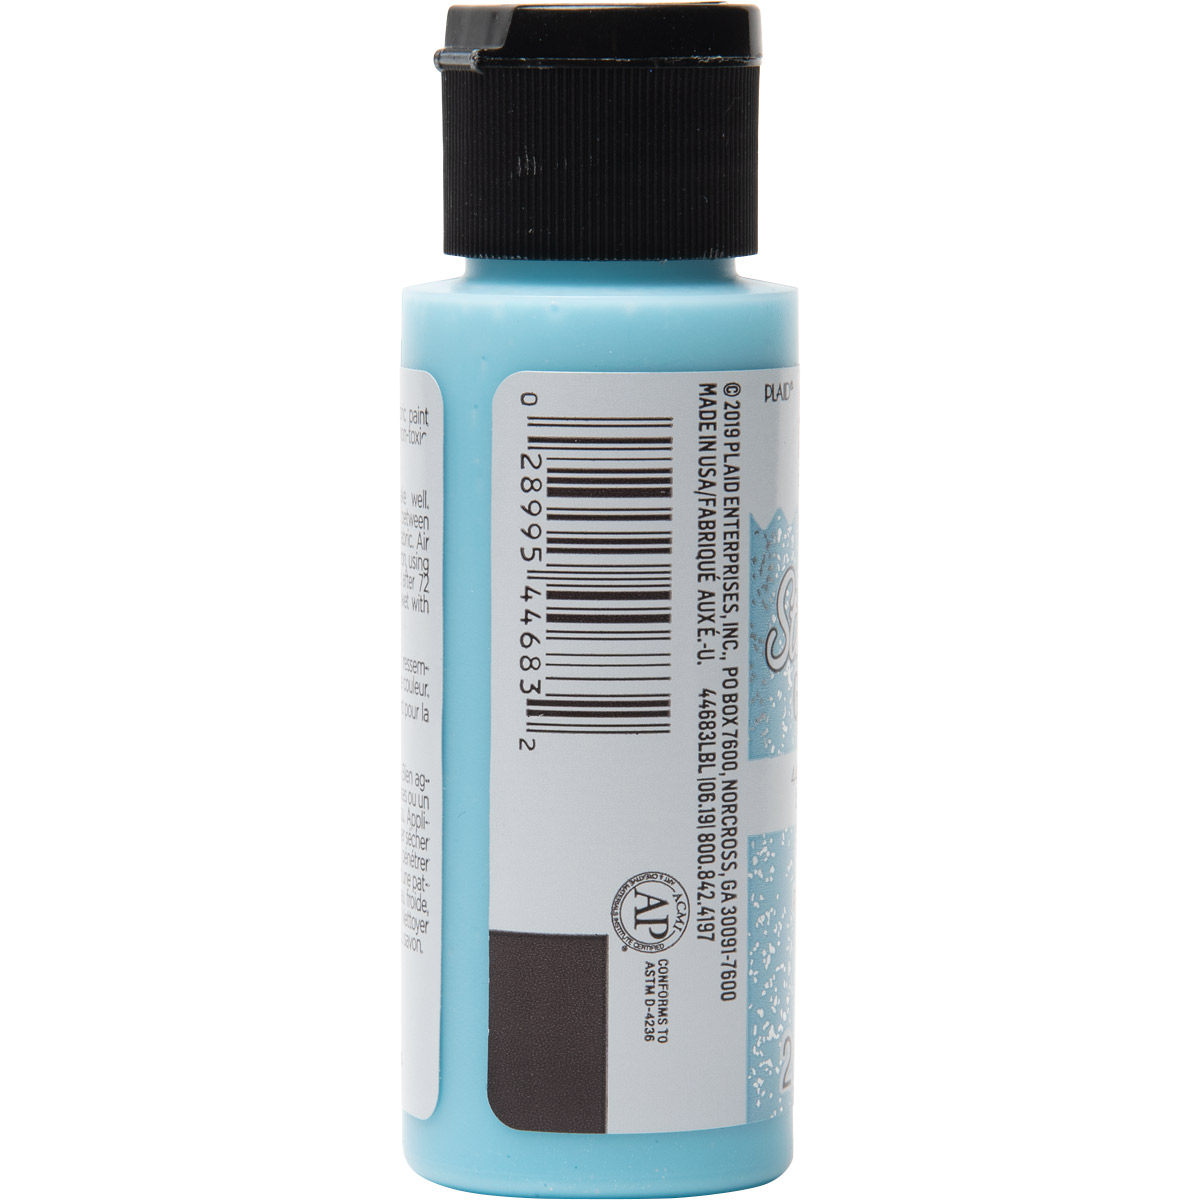 Fabric Creations™ StarStruck Glitter™ Fabric Paint - Light Blue Ice, 2 oz.